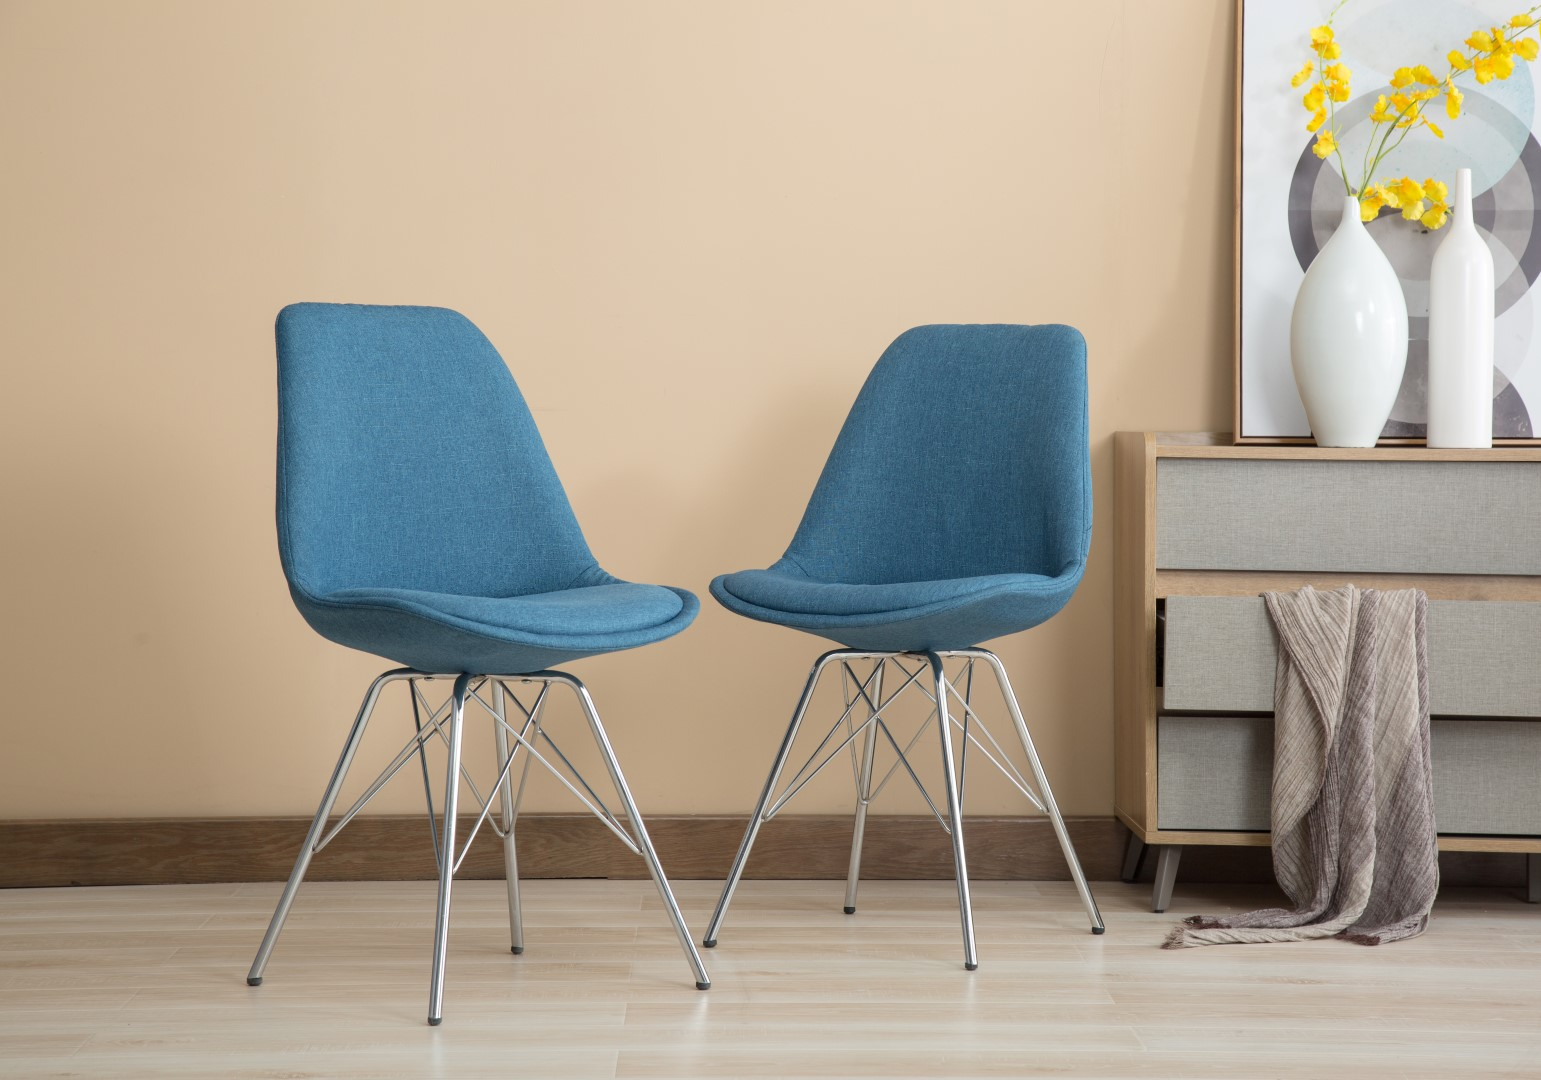 Groovy Porthos Home Set Of 2 Upholstered Dining Chairs With Chrome Metal Legs And A Striking Blue Fabric An Eames Style Chair For Living Room Dining Room Download Free Architecture Designs Scobabritishbridgeorg